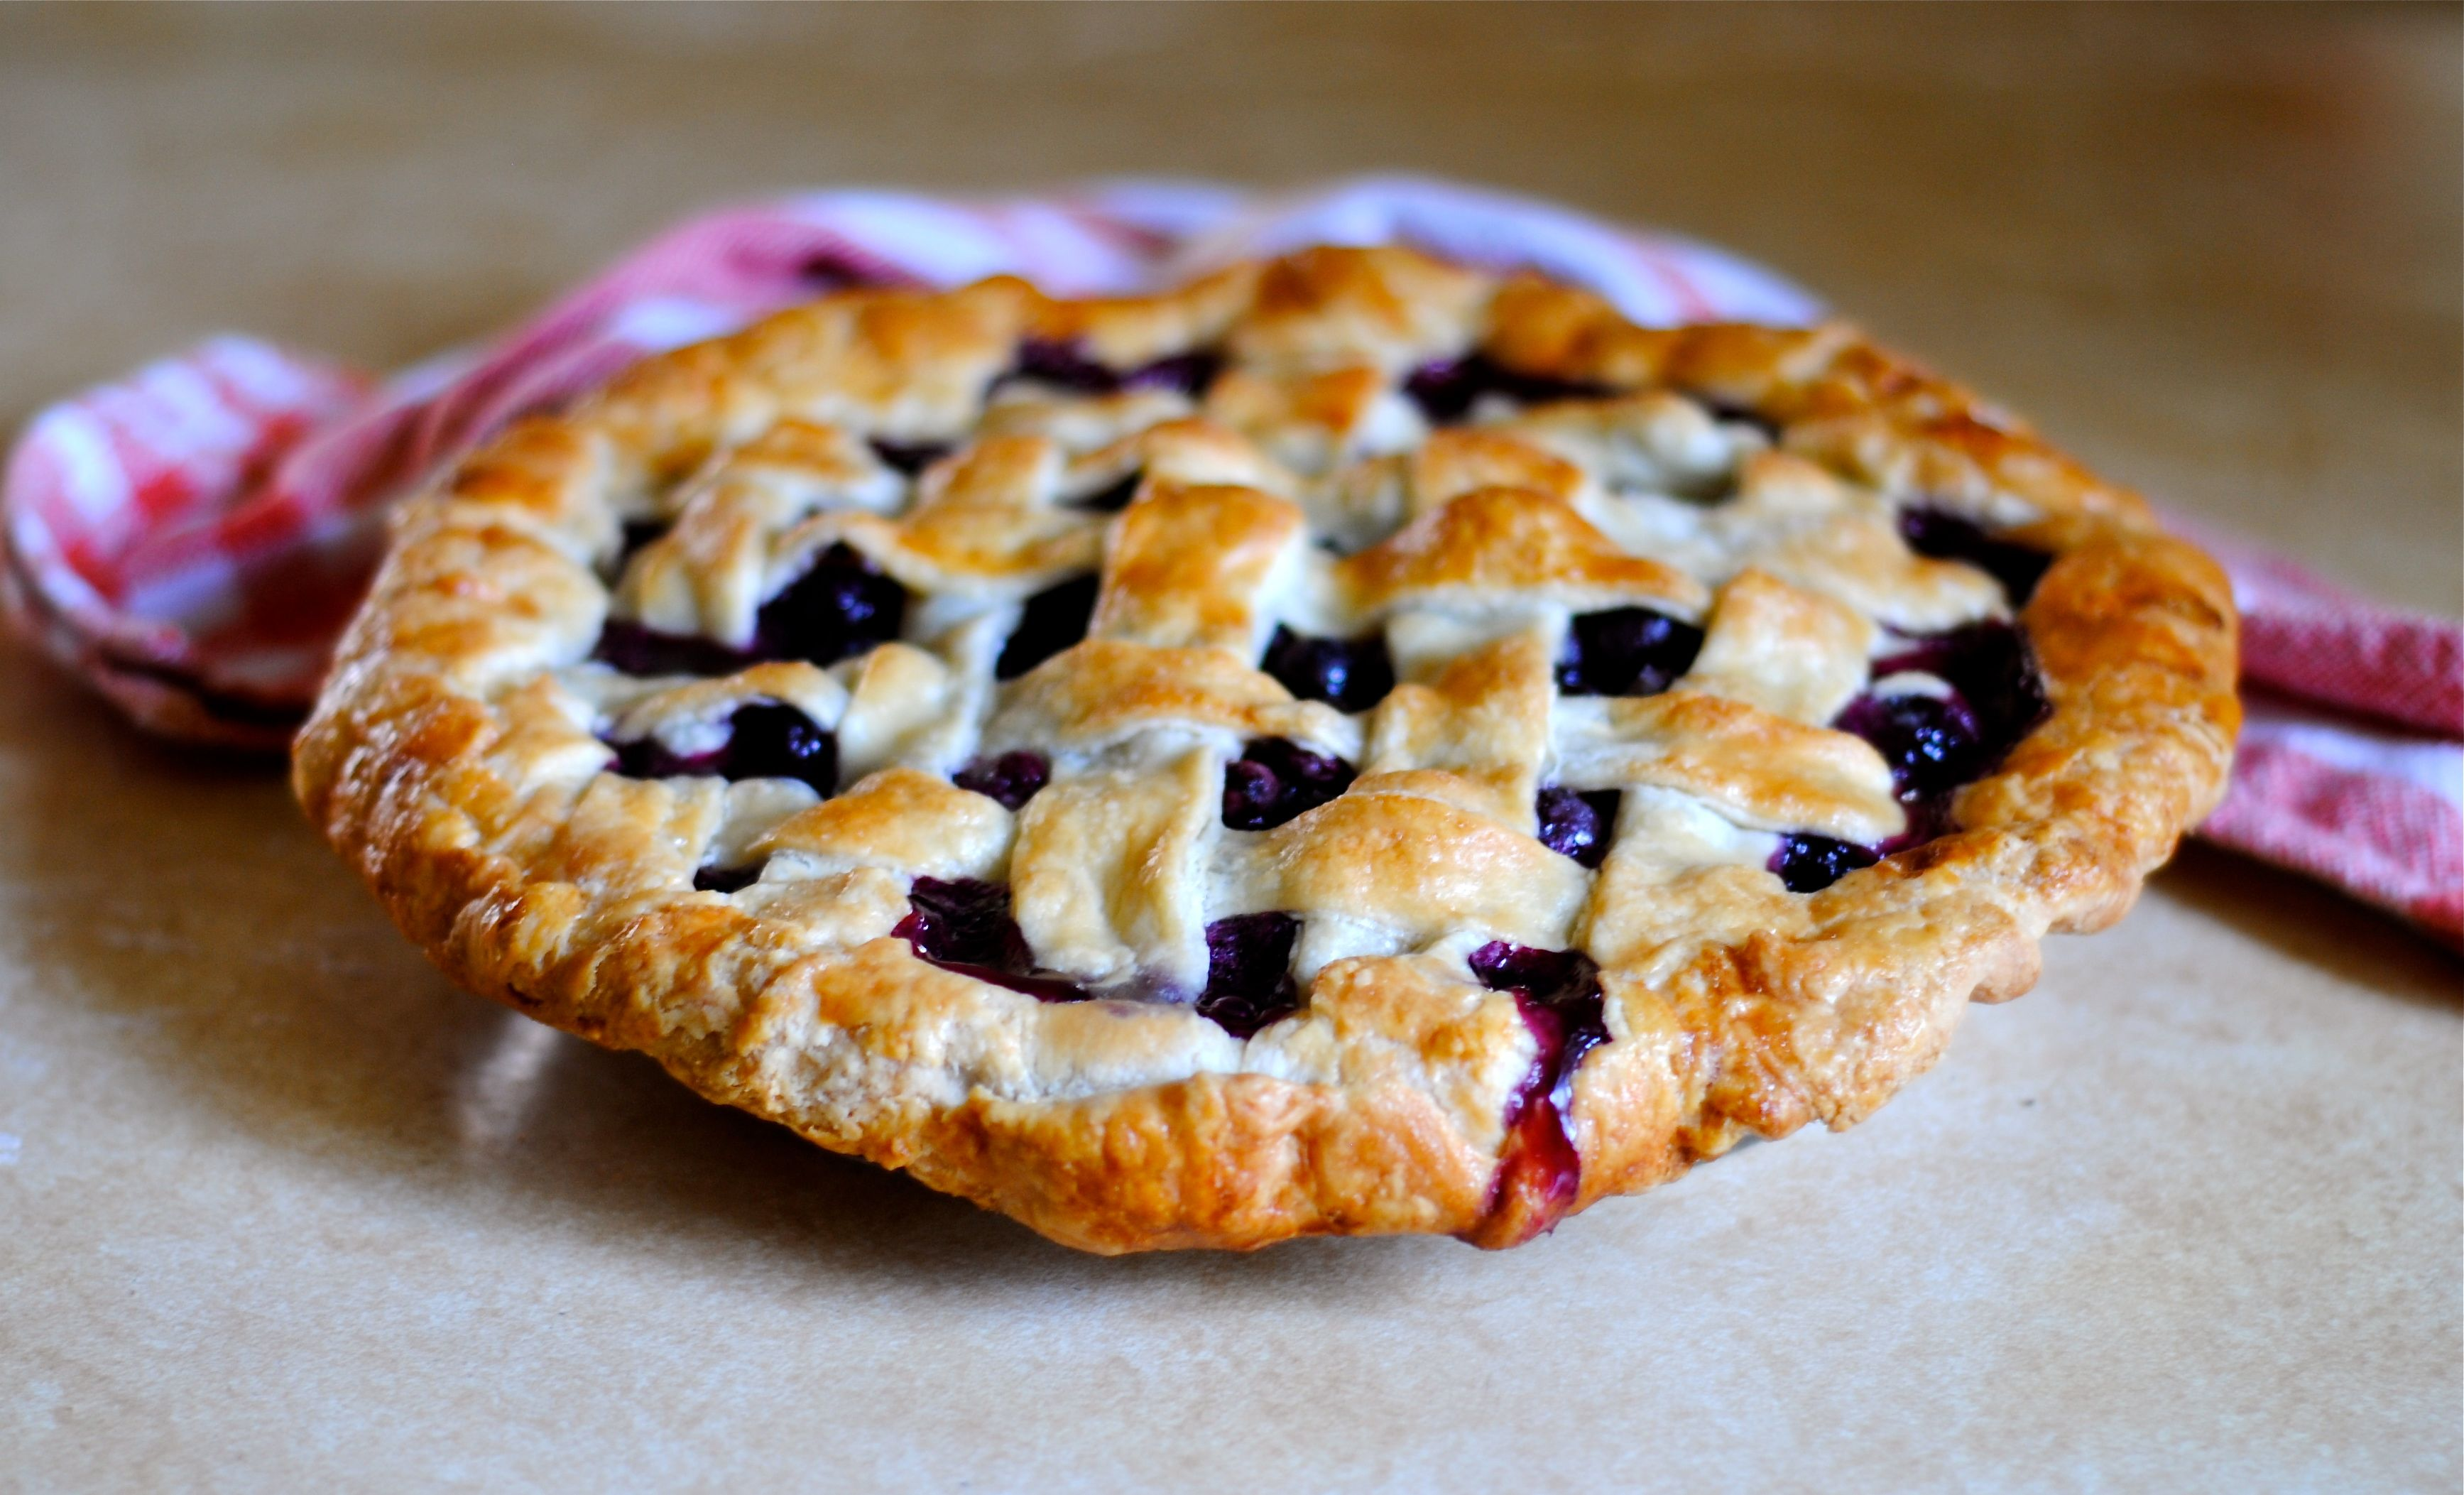 Home » Desserts » Sweet Blueberry Pie » blueberry pie 3